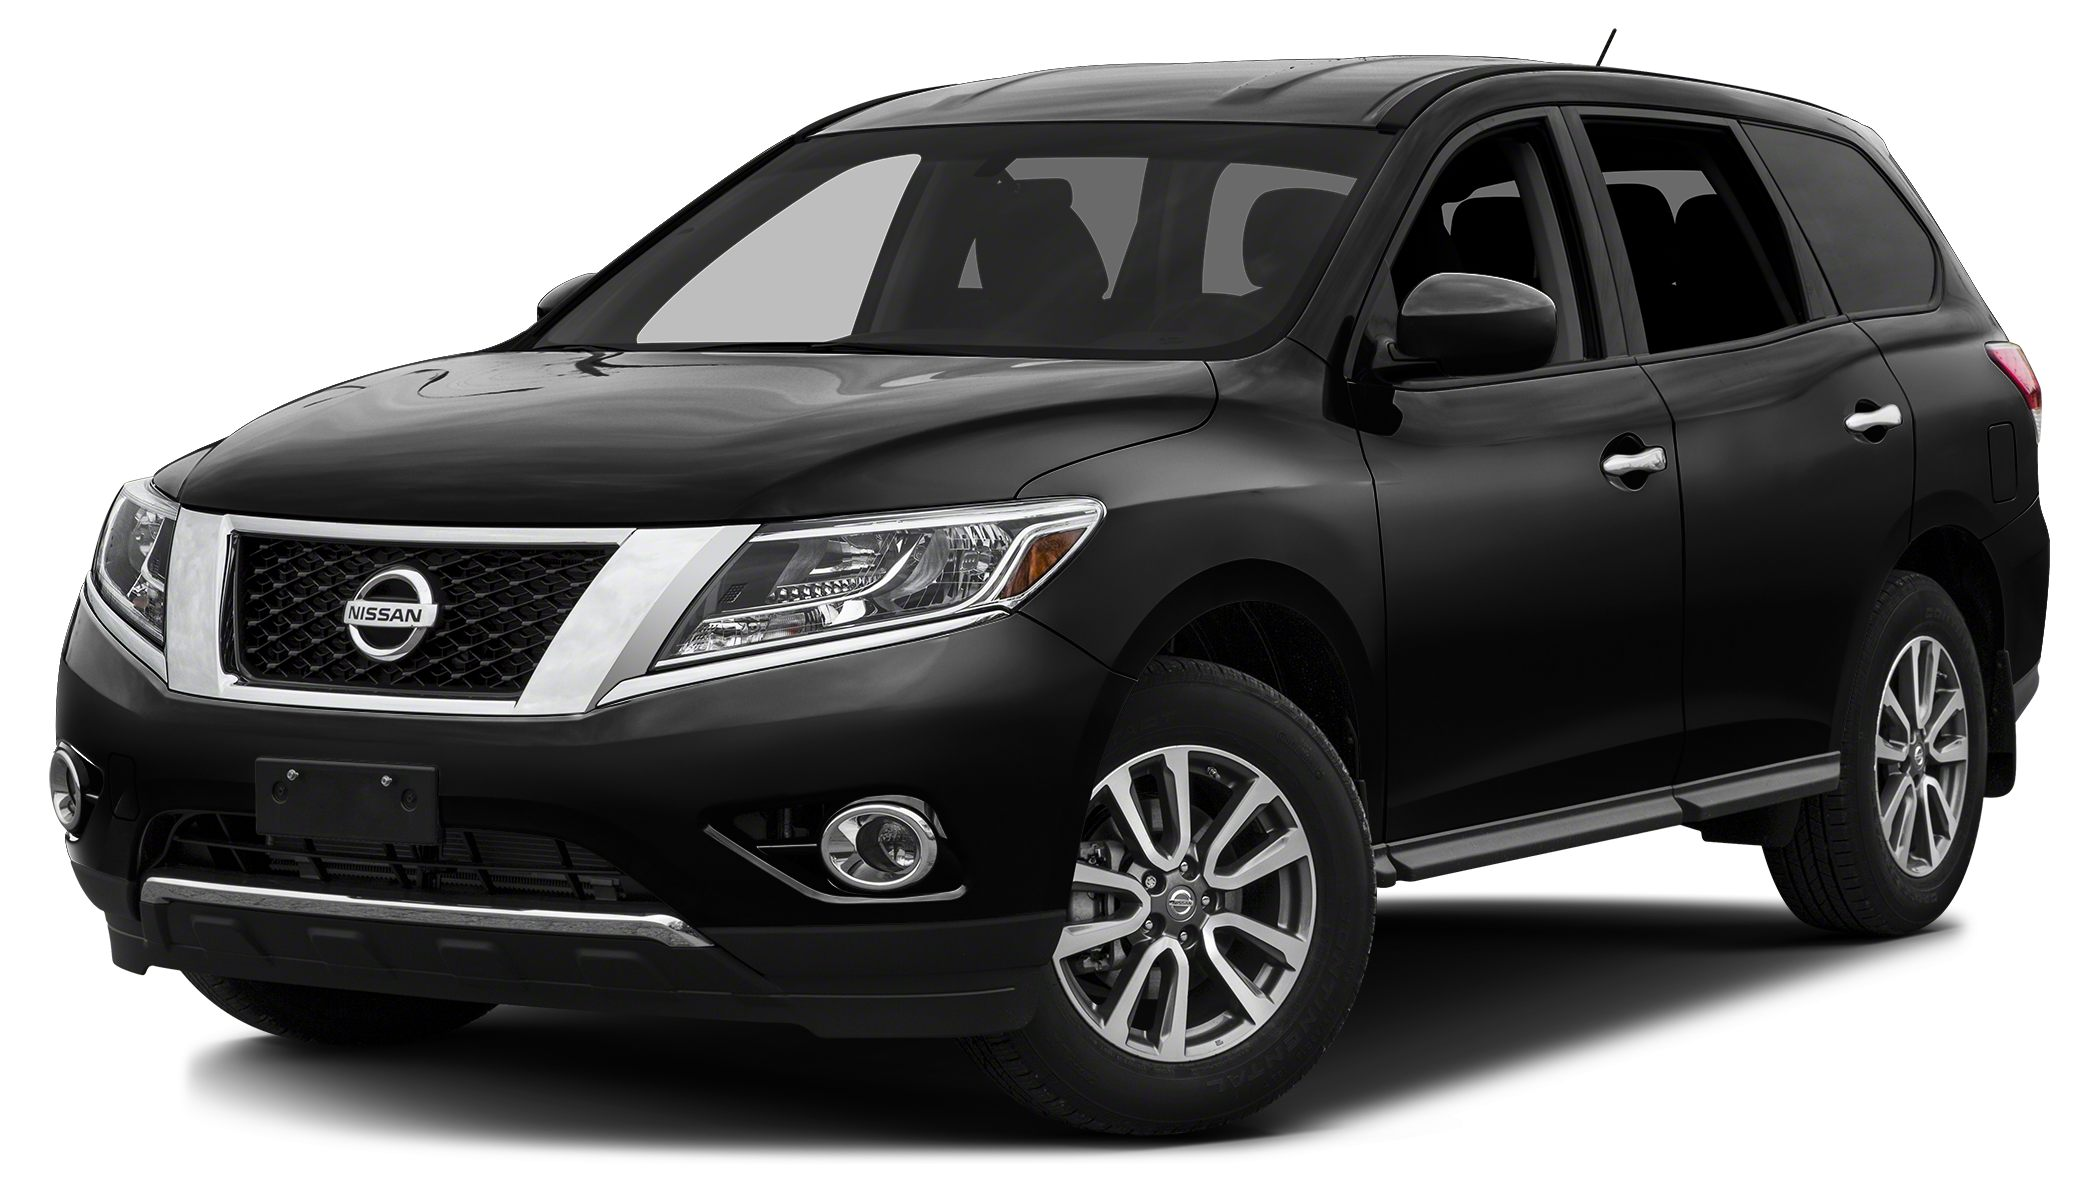 2014 Nissan Pathfinder S 4WD 7 Passenger 6 cyl Push to Start Alloys Rear Backup Camera Multi